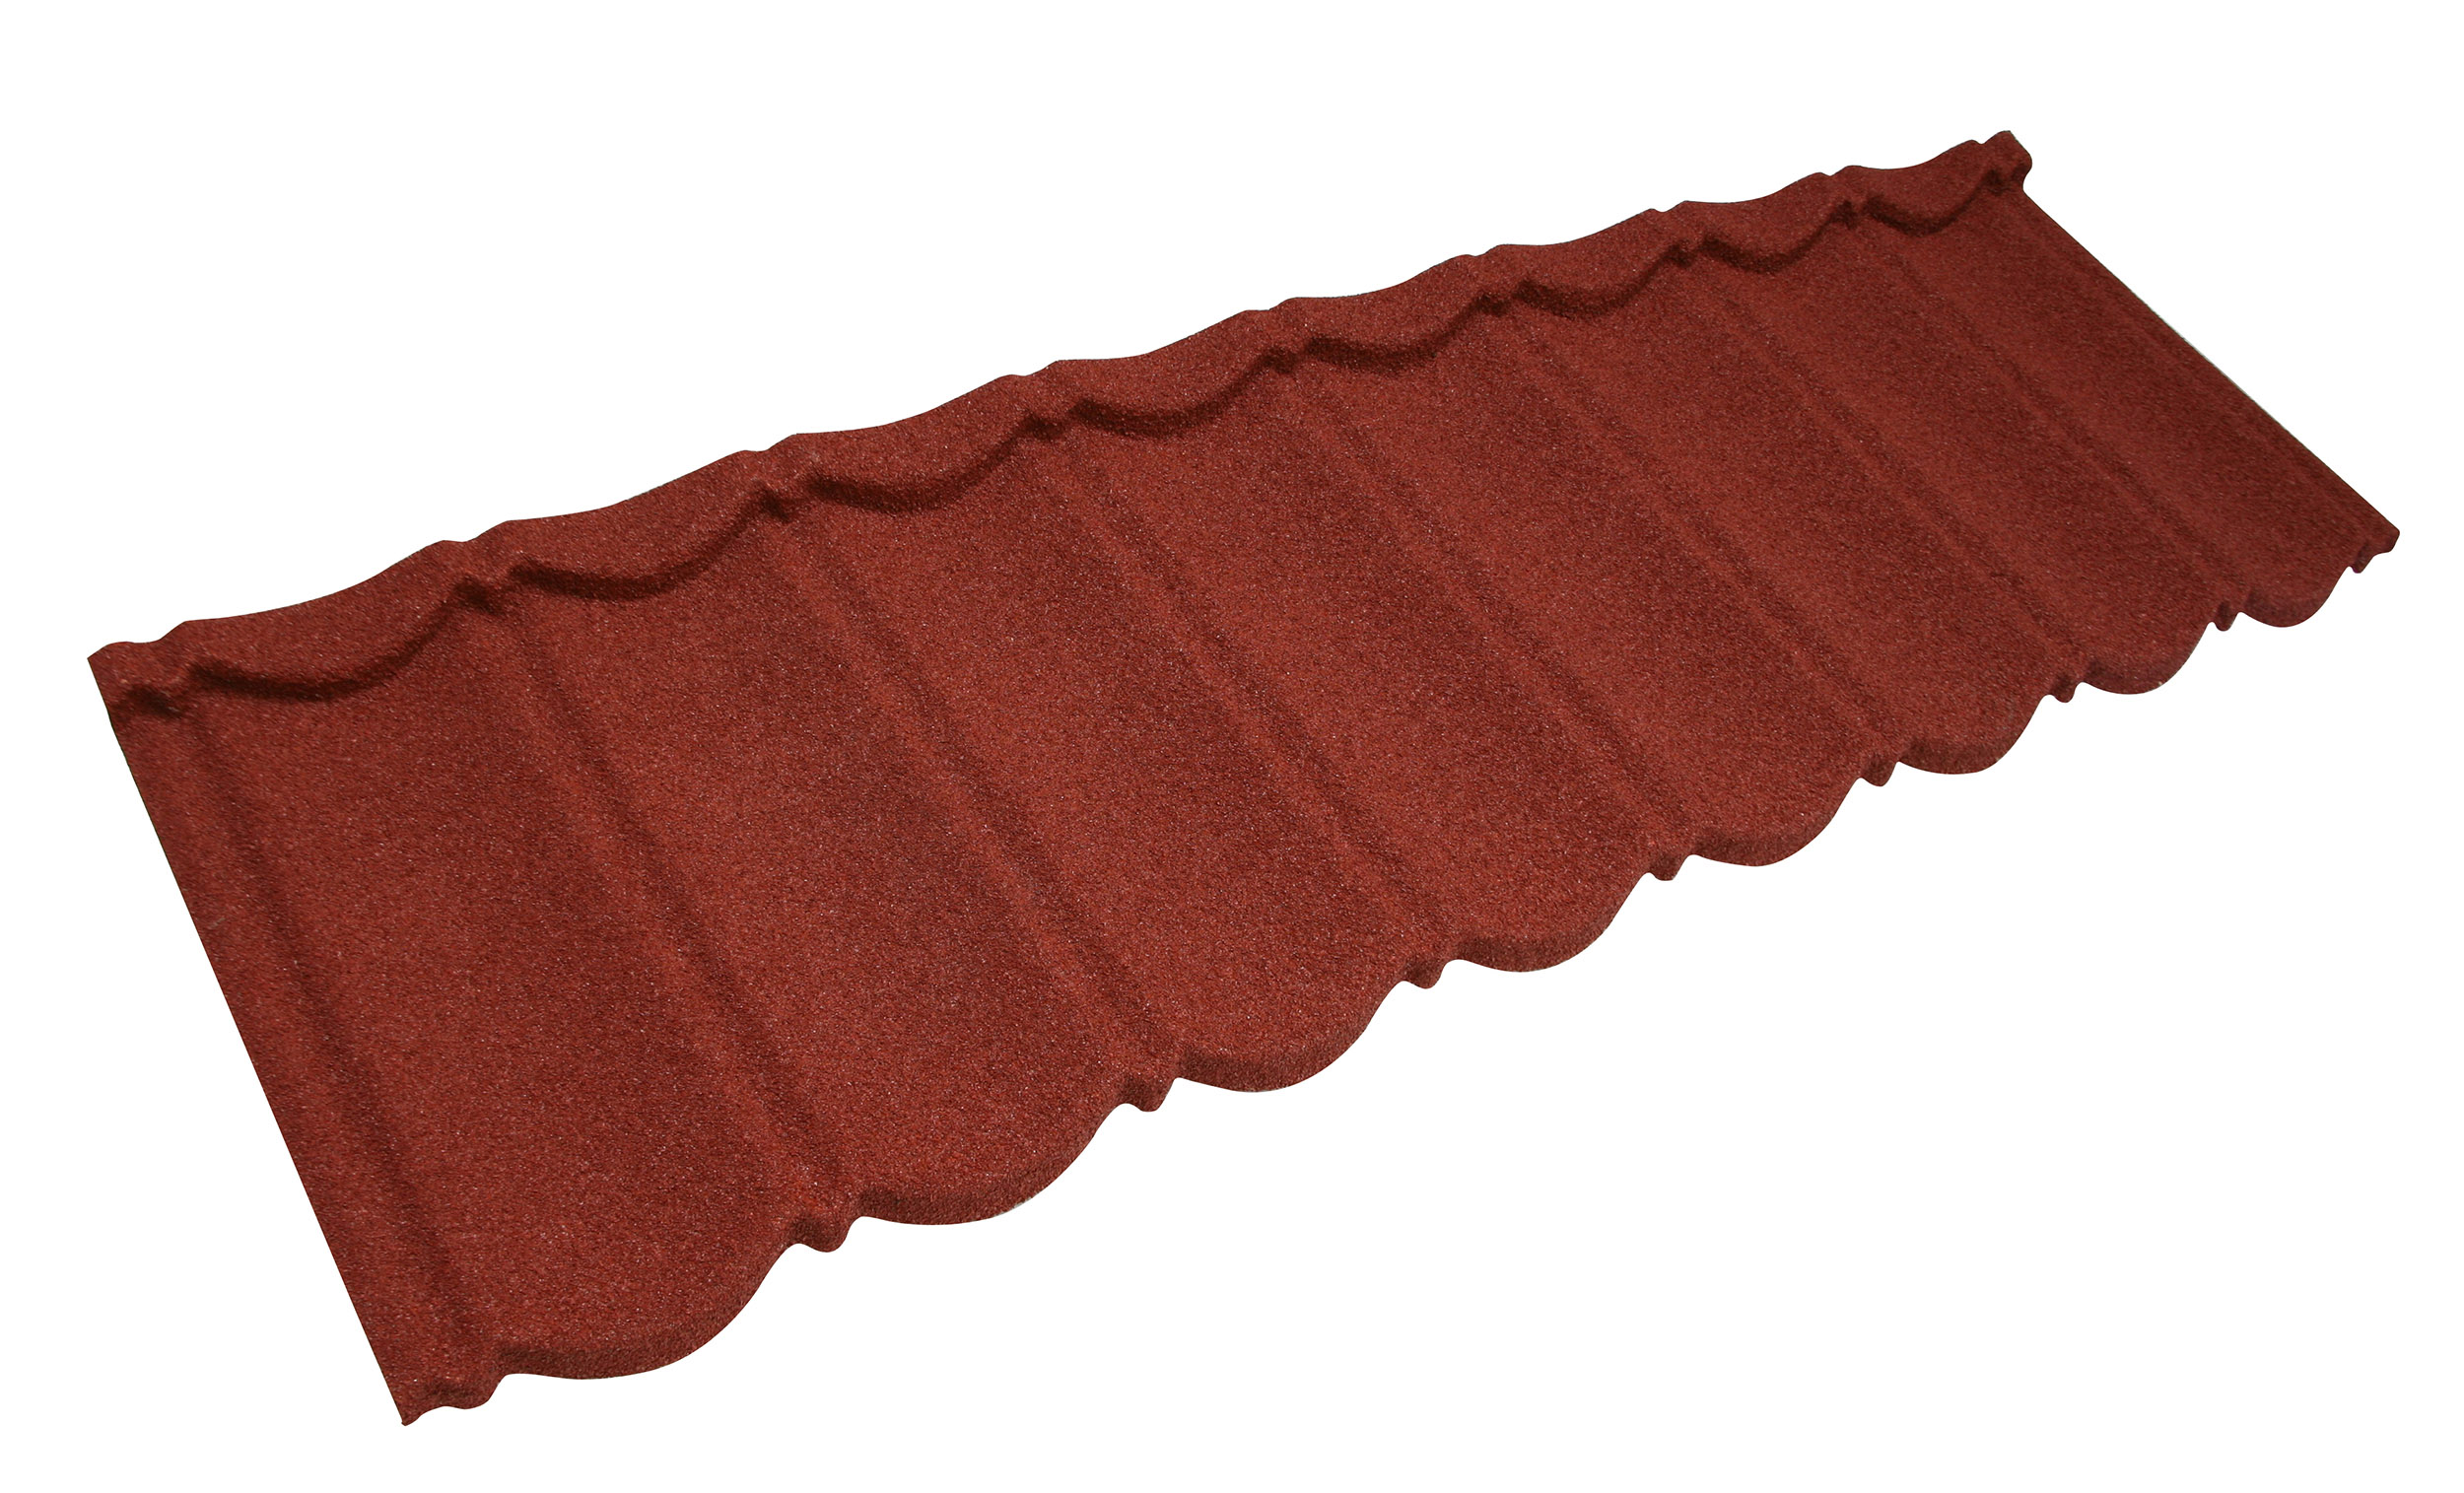 Metrotile Bond Lightweight Roofing Tile Profile in Red